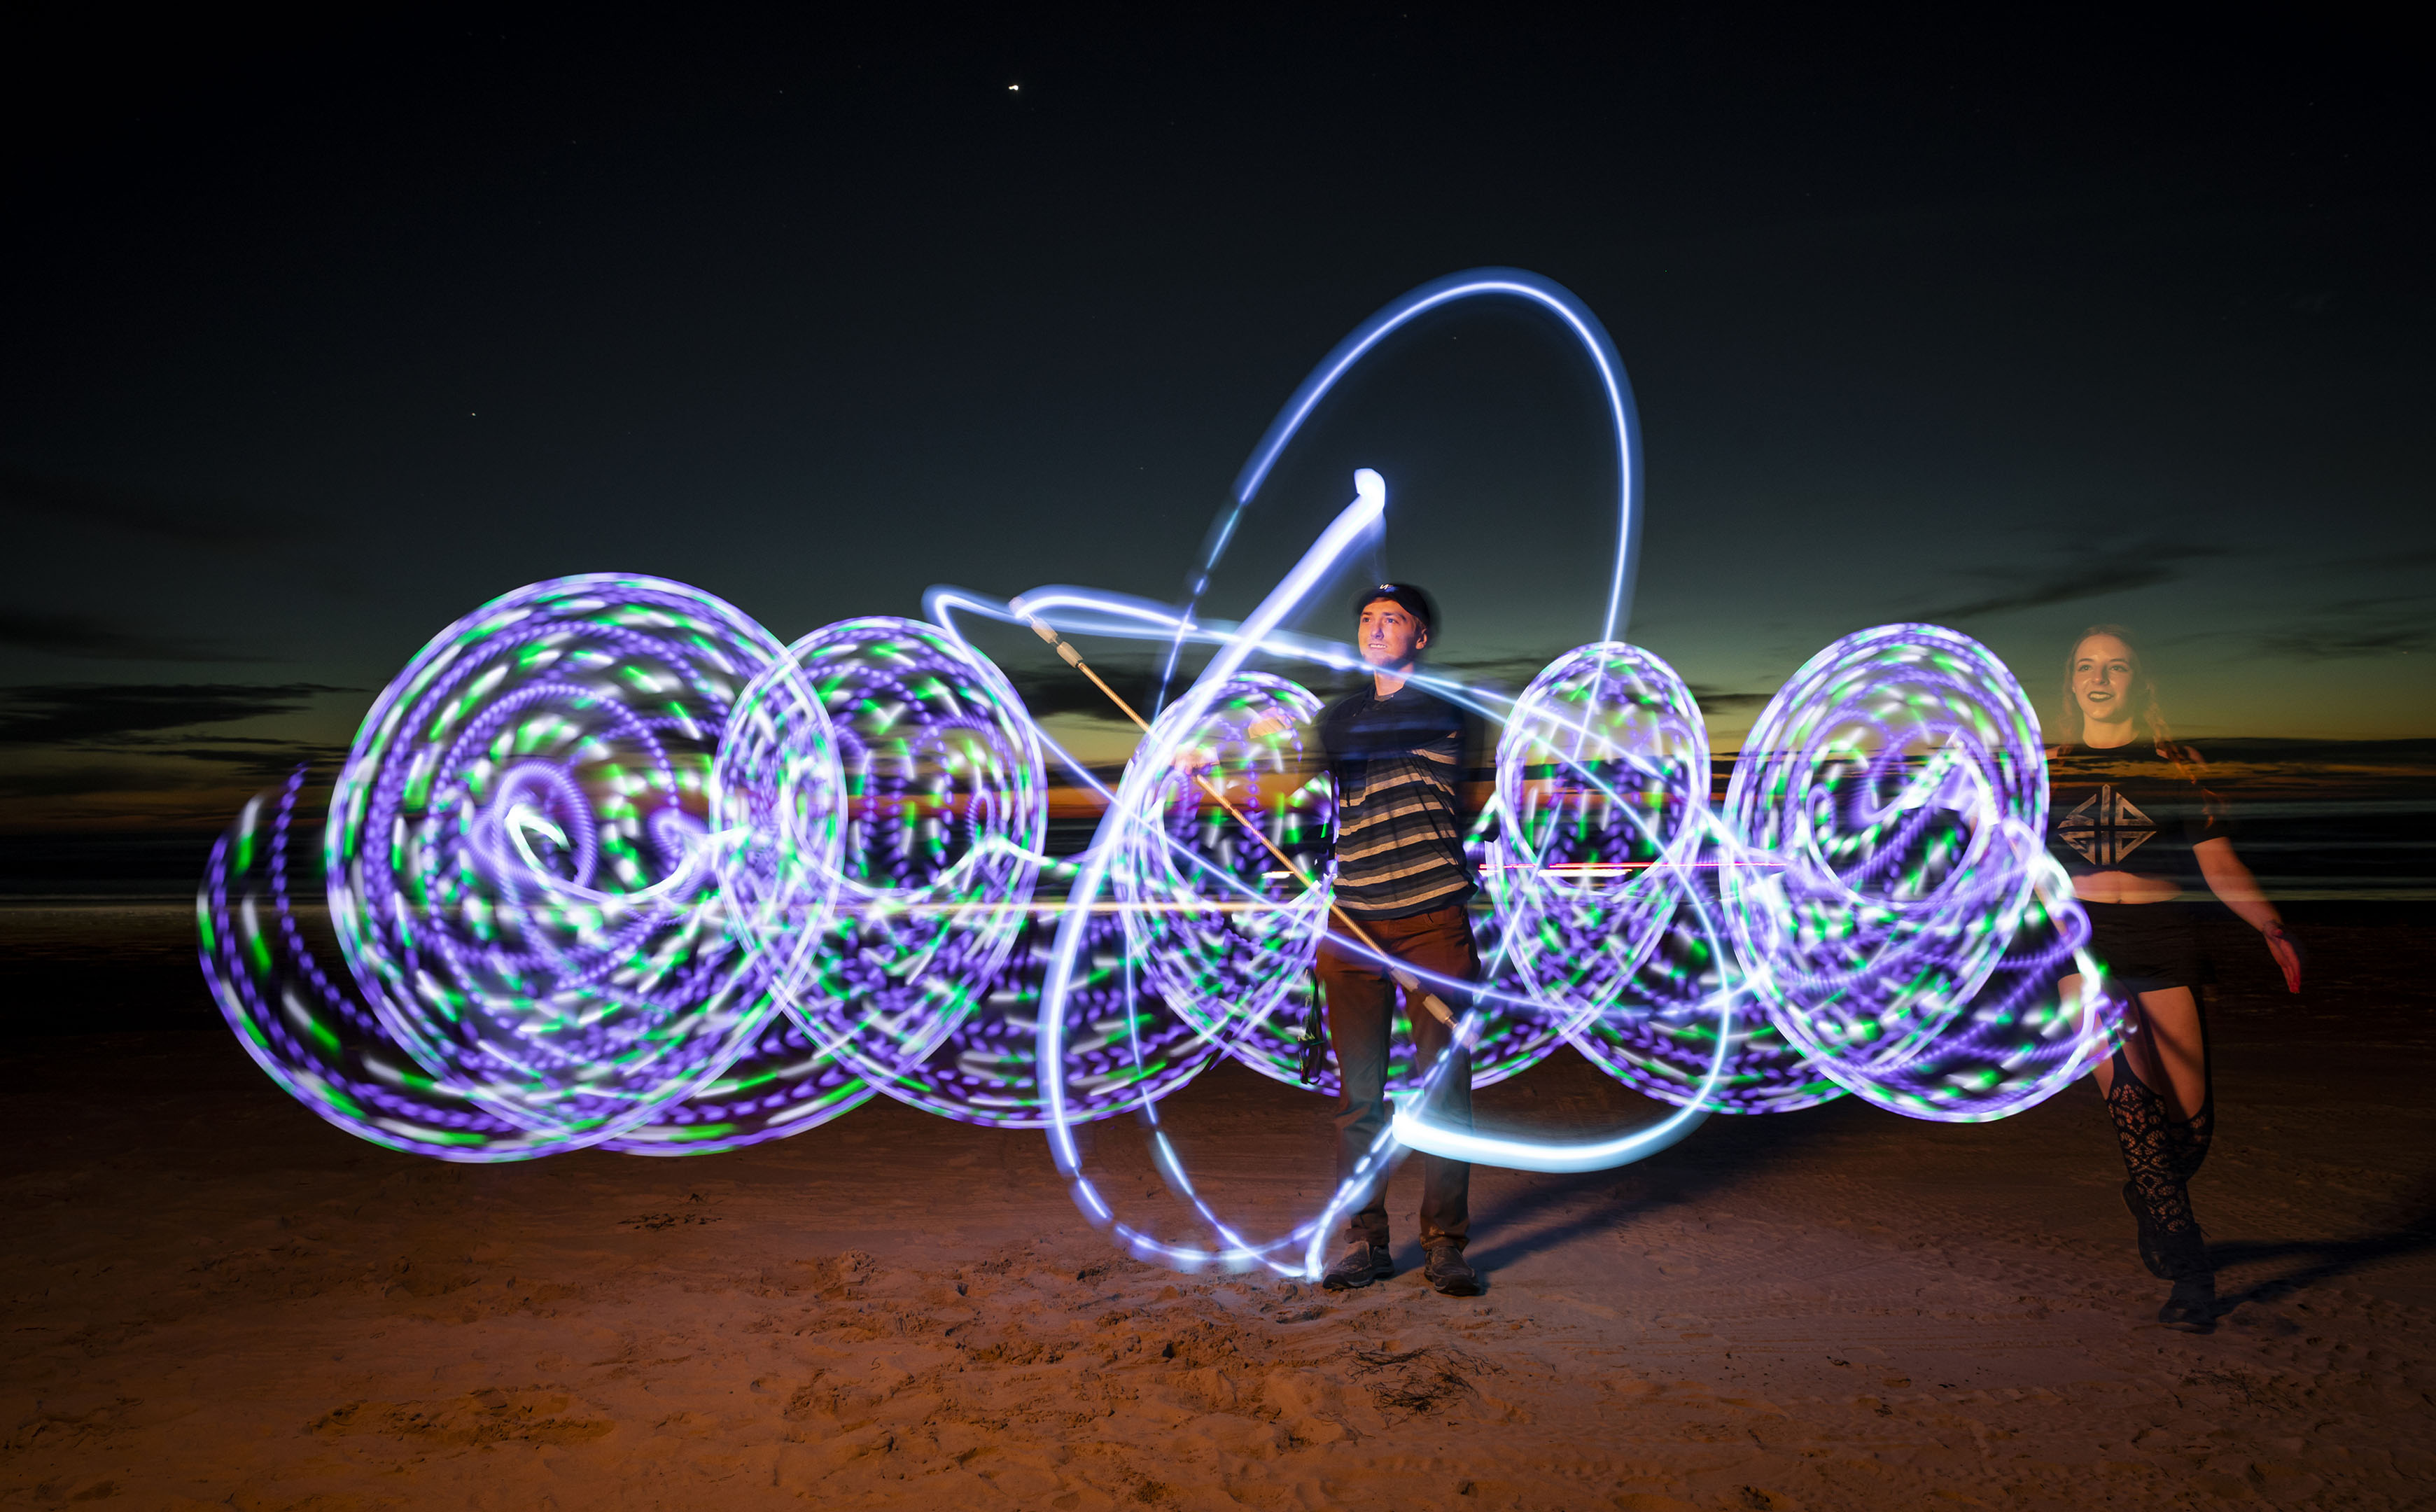 A young woman and man stand on the beach swirling lights to create a purple and green pattern